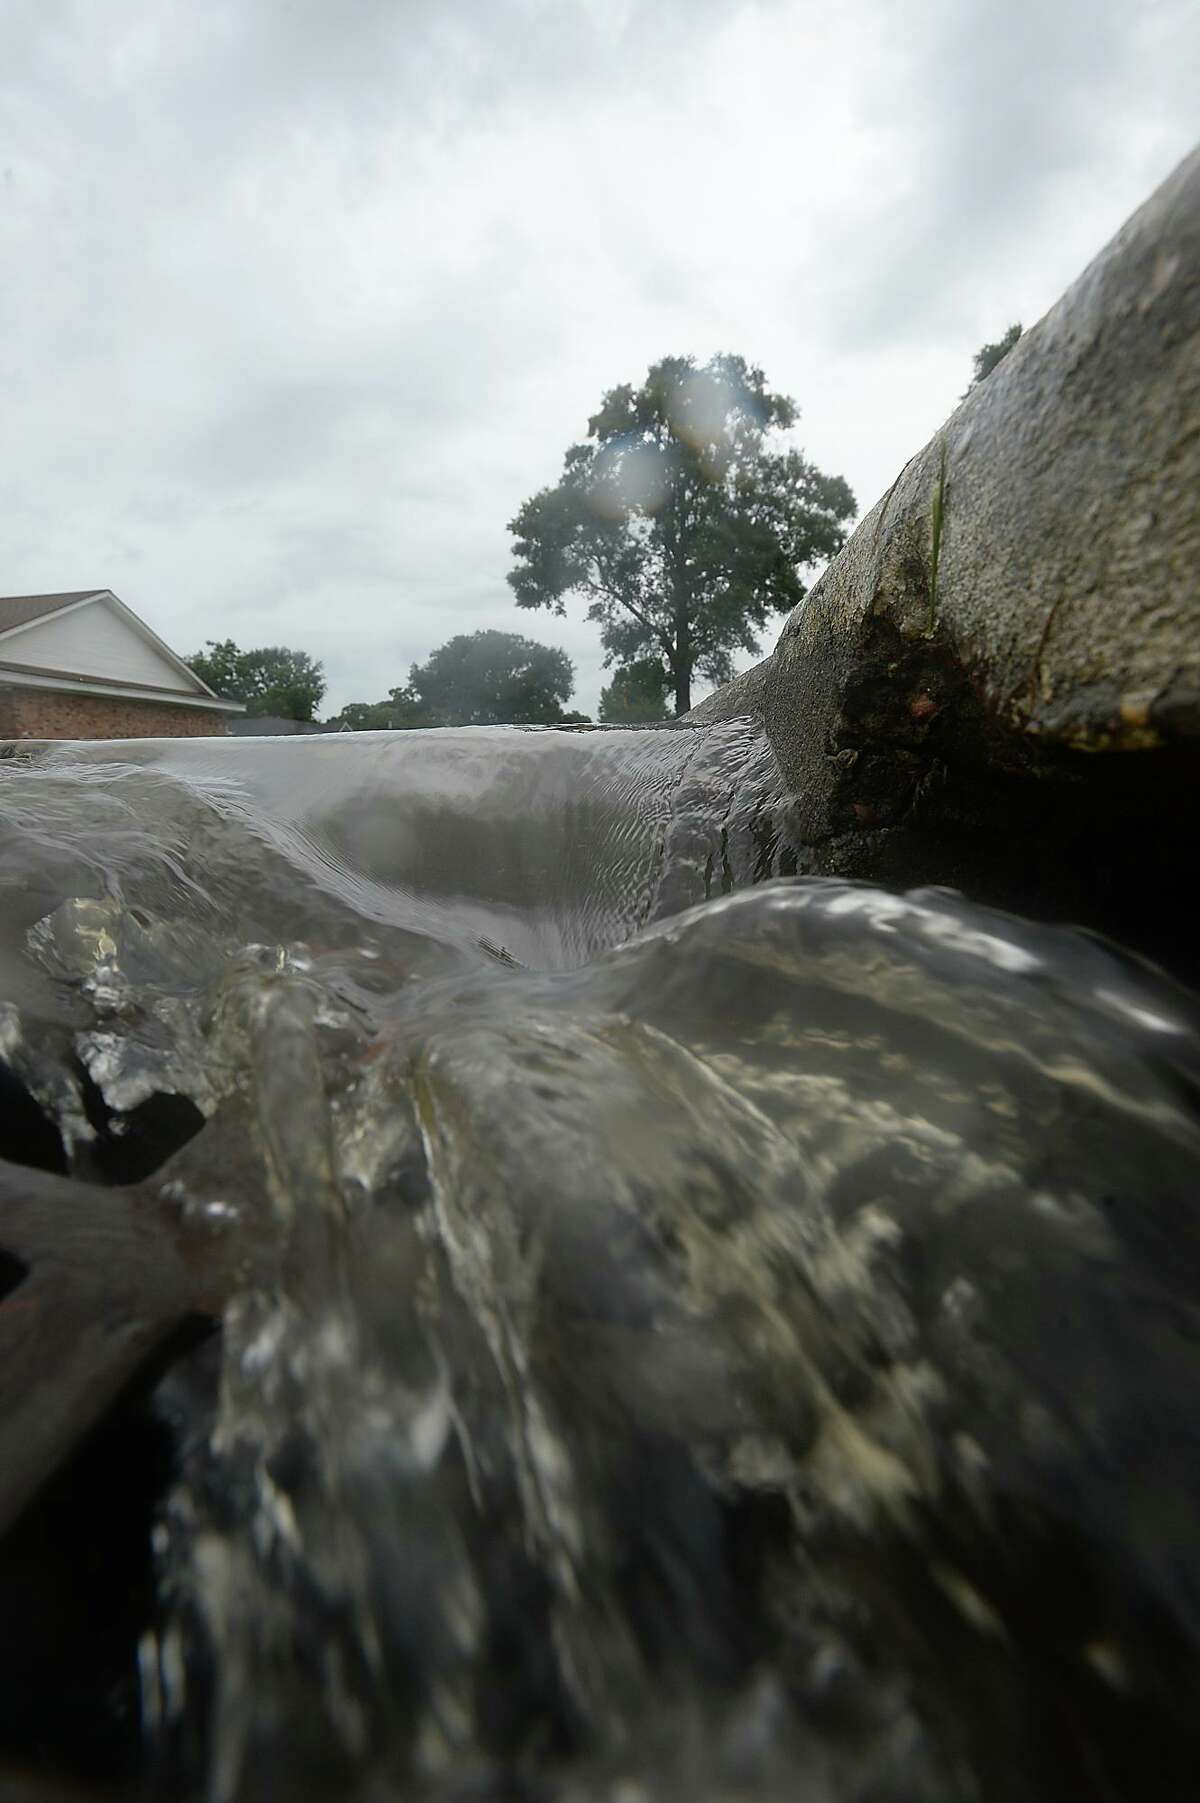 Water pours into a storm drain on 31st Street in Nederland as spotty bursts of rain move through the area Saturday, briefly accumulating on streets near Nederland Avenue, which is prone to flooding in heavy rainfalls. Heavier rains and wind from the outer bands of Hurricane Harvey, which was downgraded to a tropical storm, are expected to impact the Southeast Texas region within the coming days, increasing the risk for severe flooding. Photo taken Saturday, August 26, 2017 Kim Brent/The Enterprise